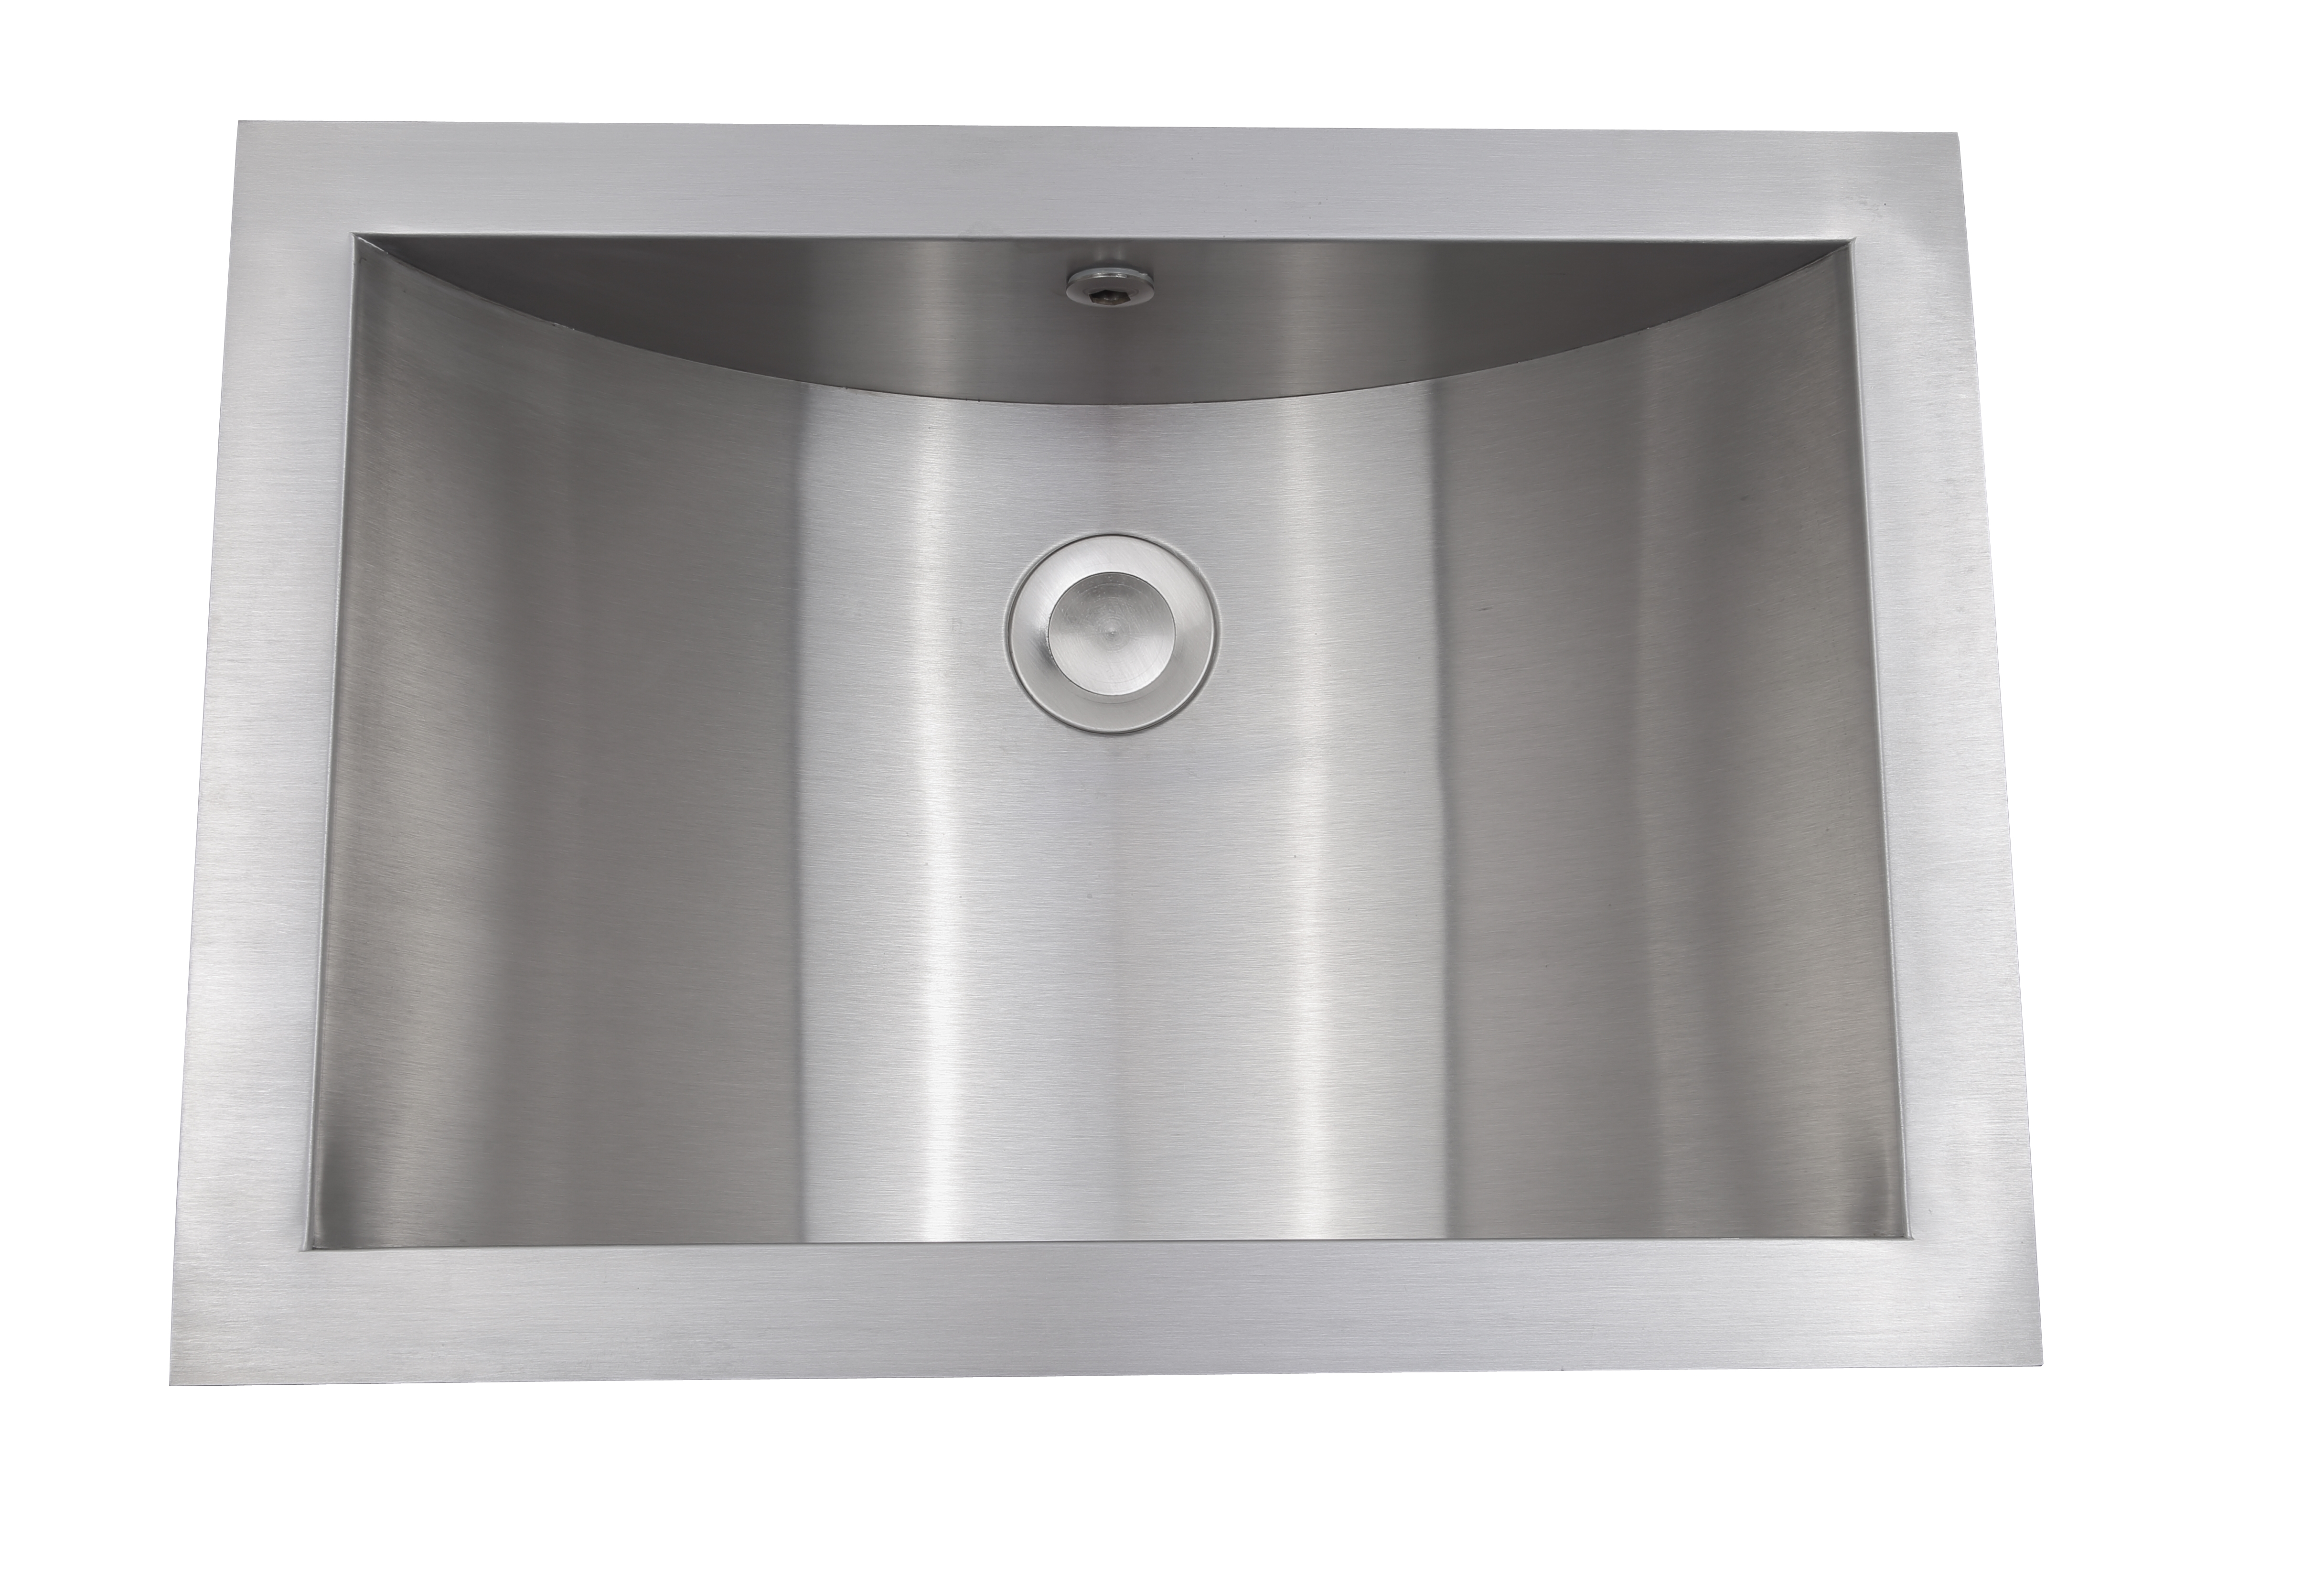 As344 21 X 15 X 6 18g Single Bowl Undermount Legend Stainless Steel Bathroom Sink Amerisink